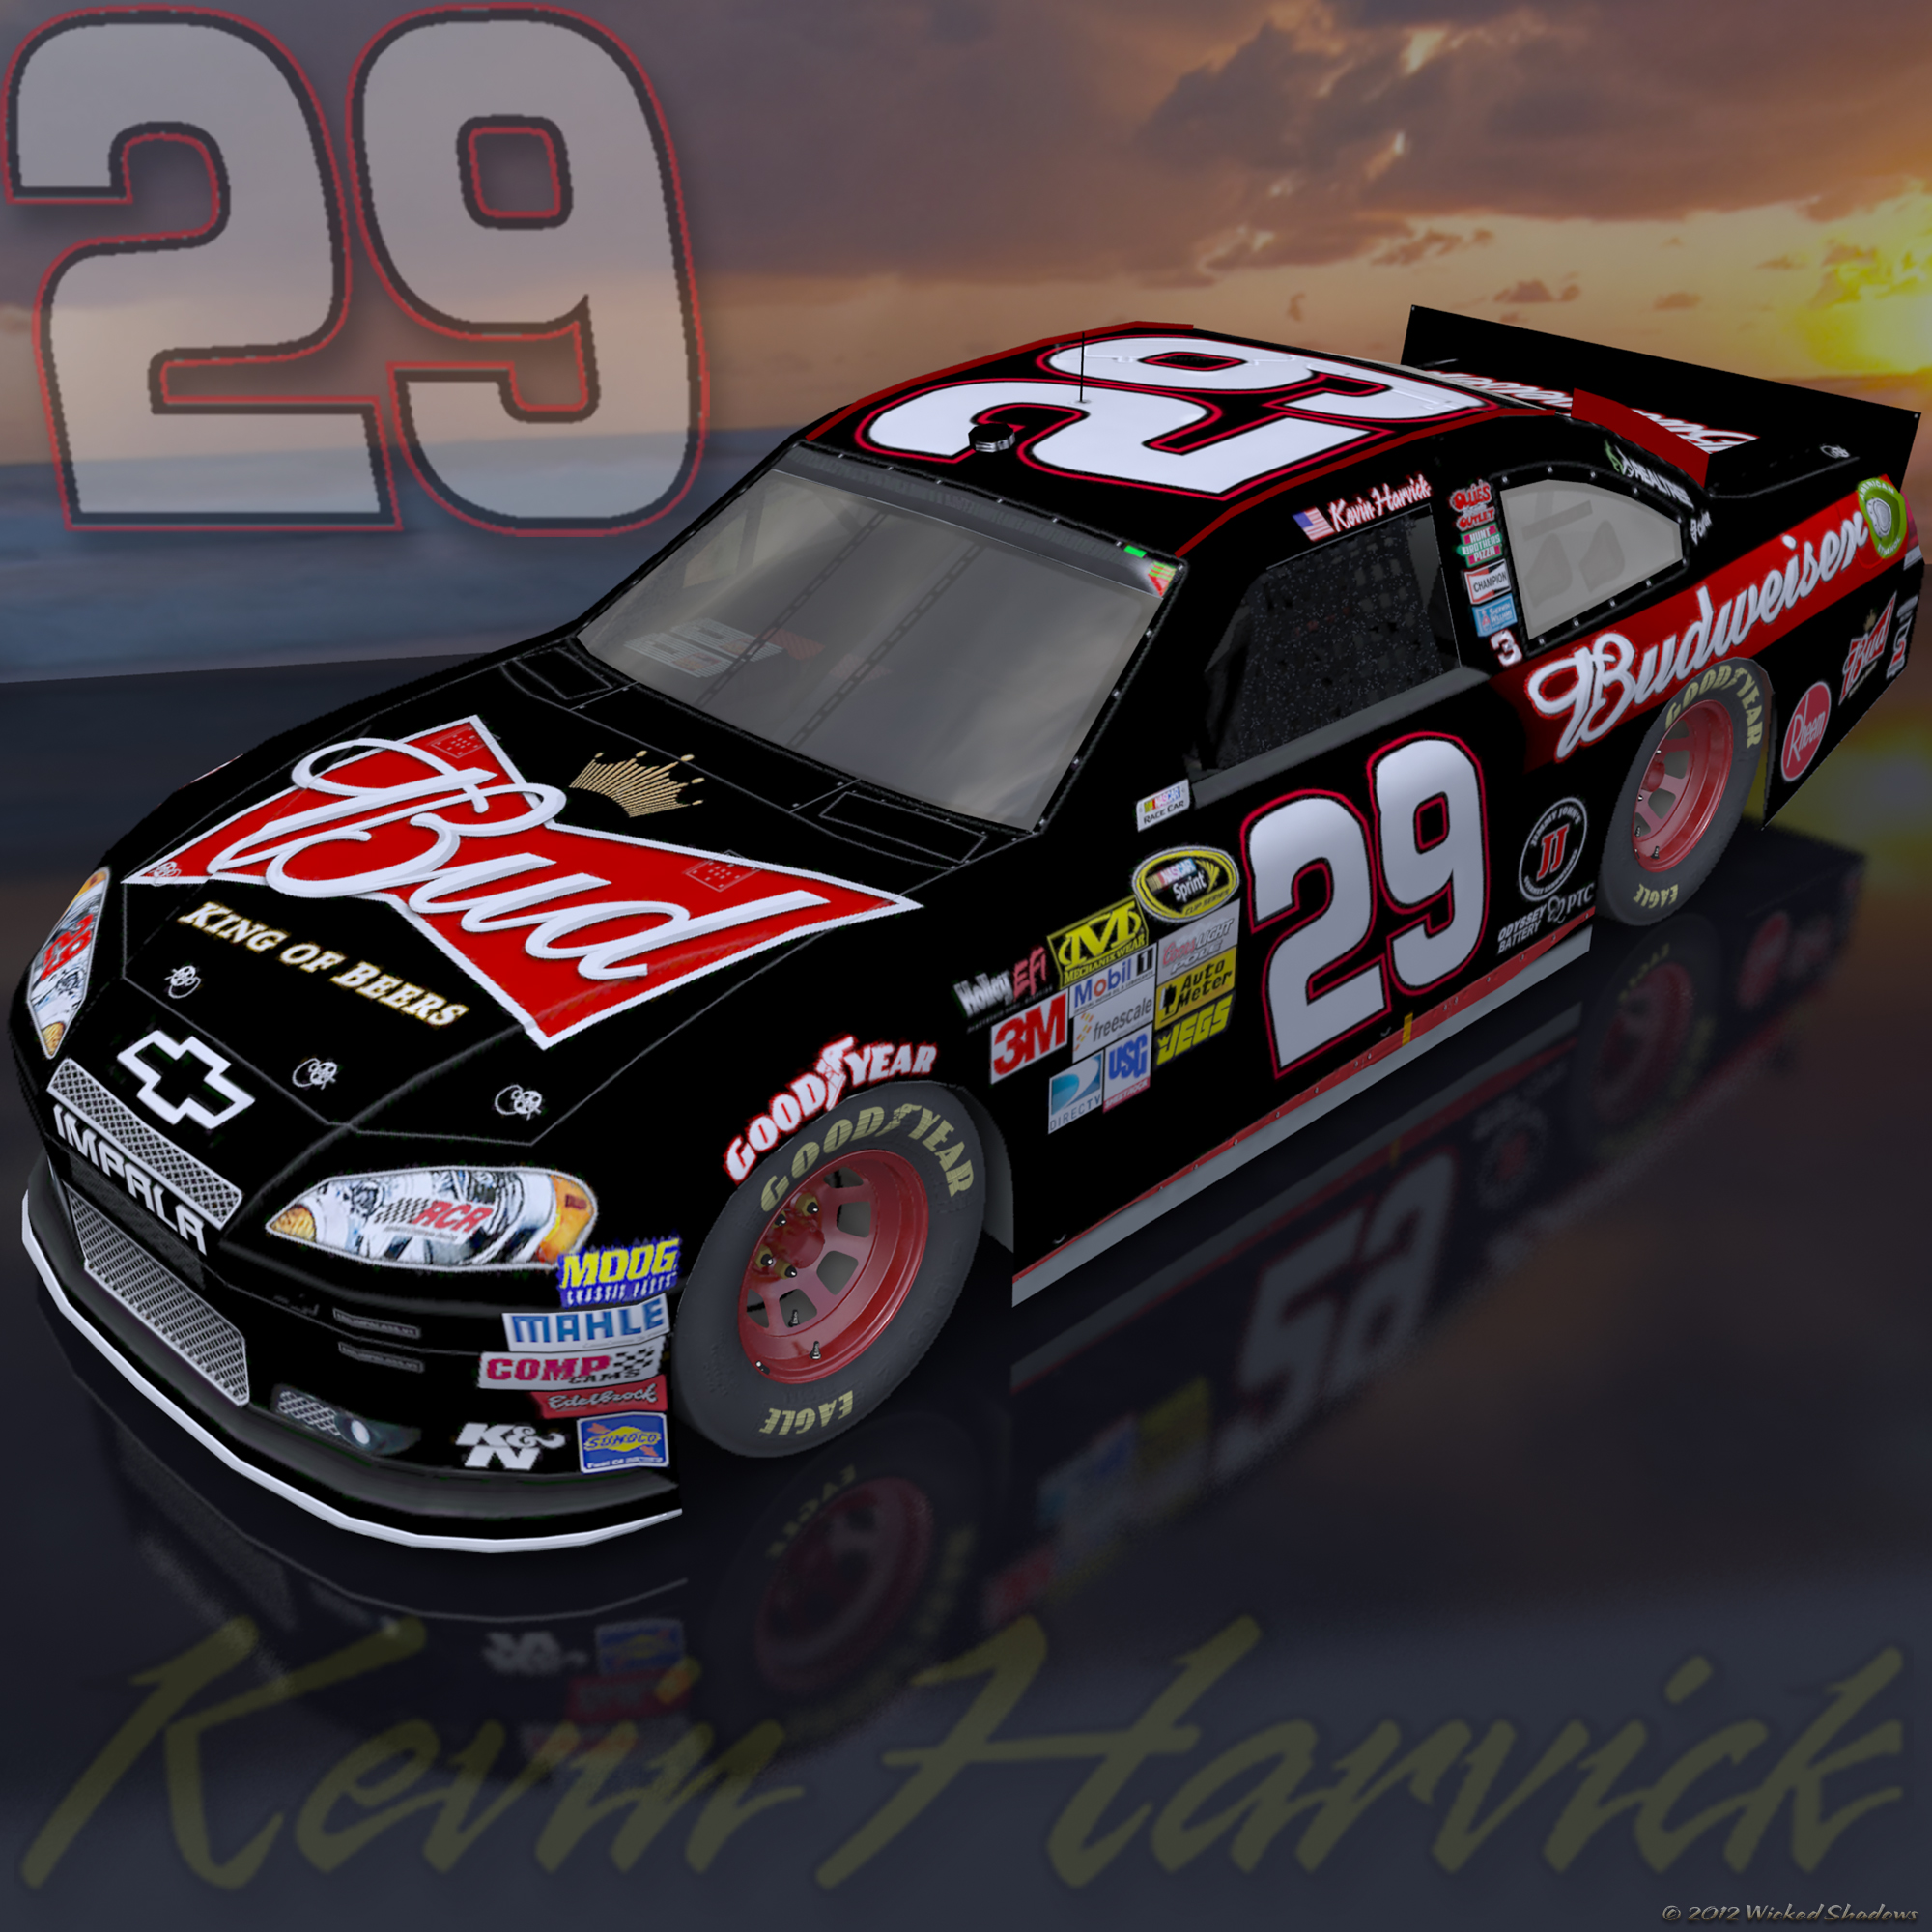 Wallpapers By Wicked Shadows: Kevin Harvick Budweiser